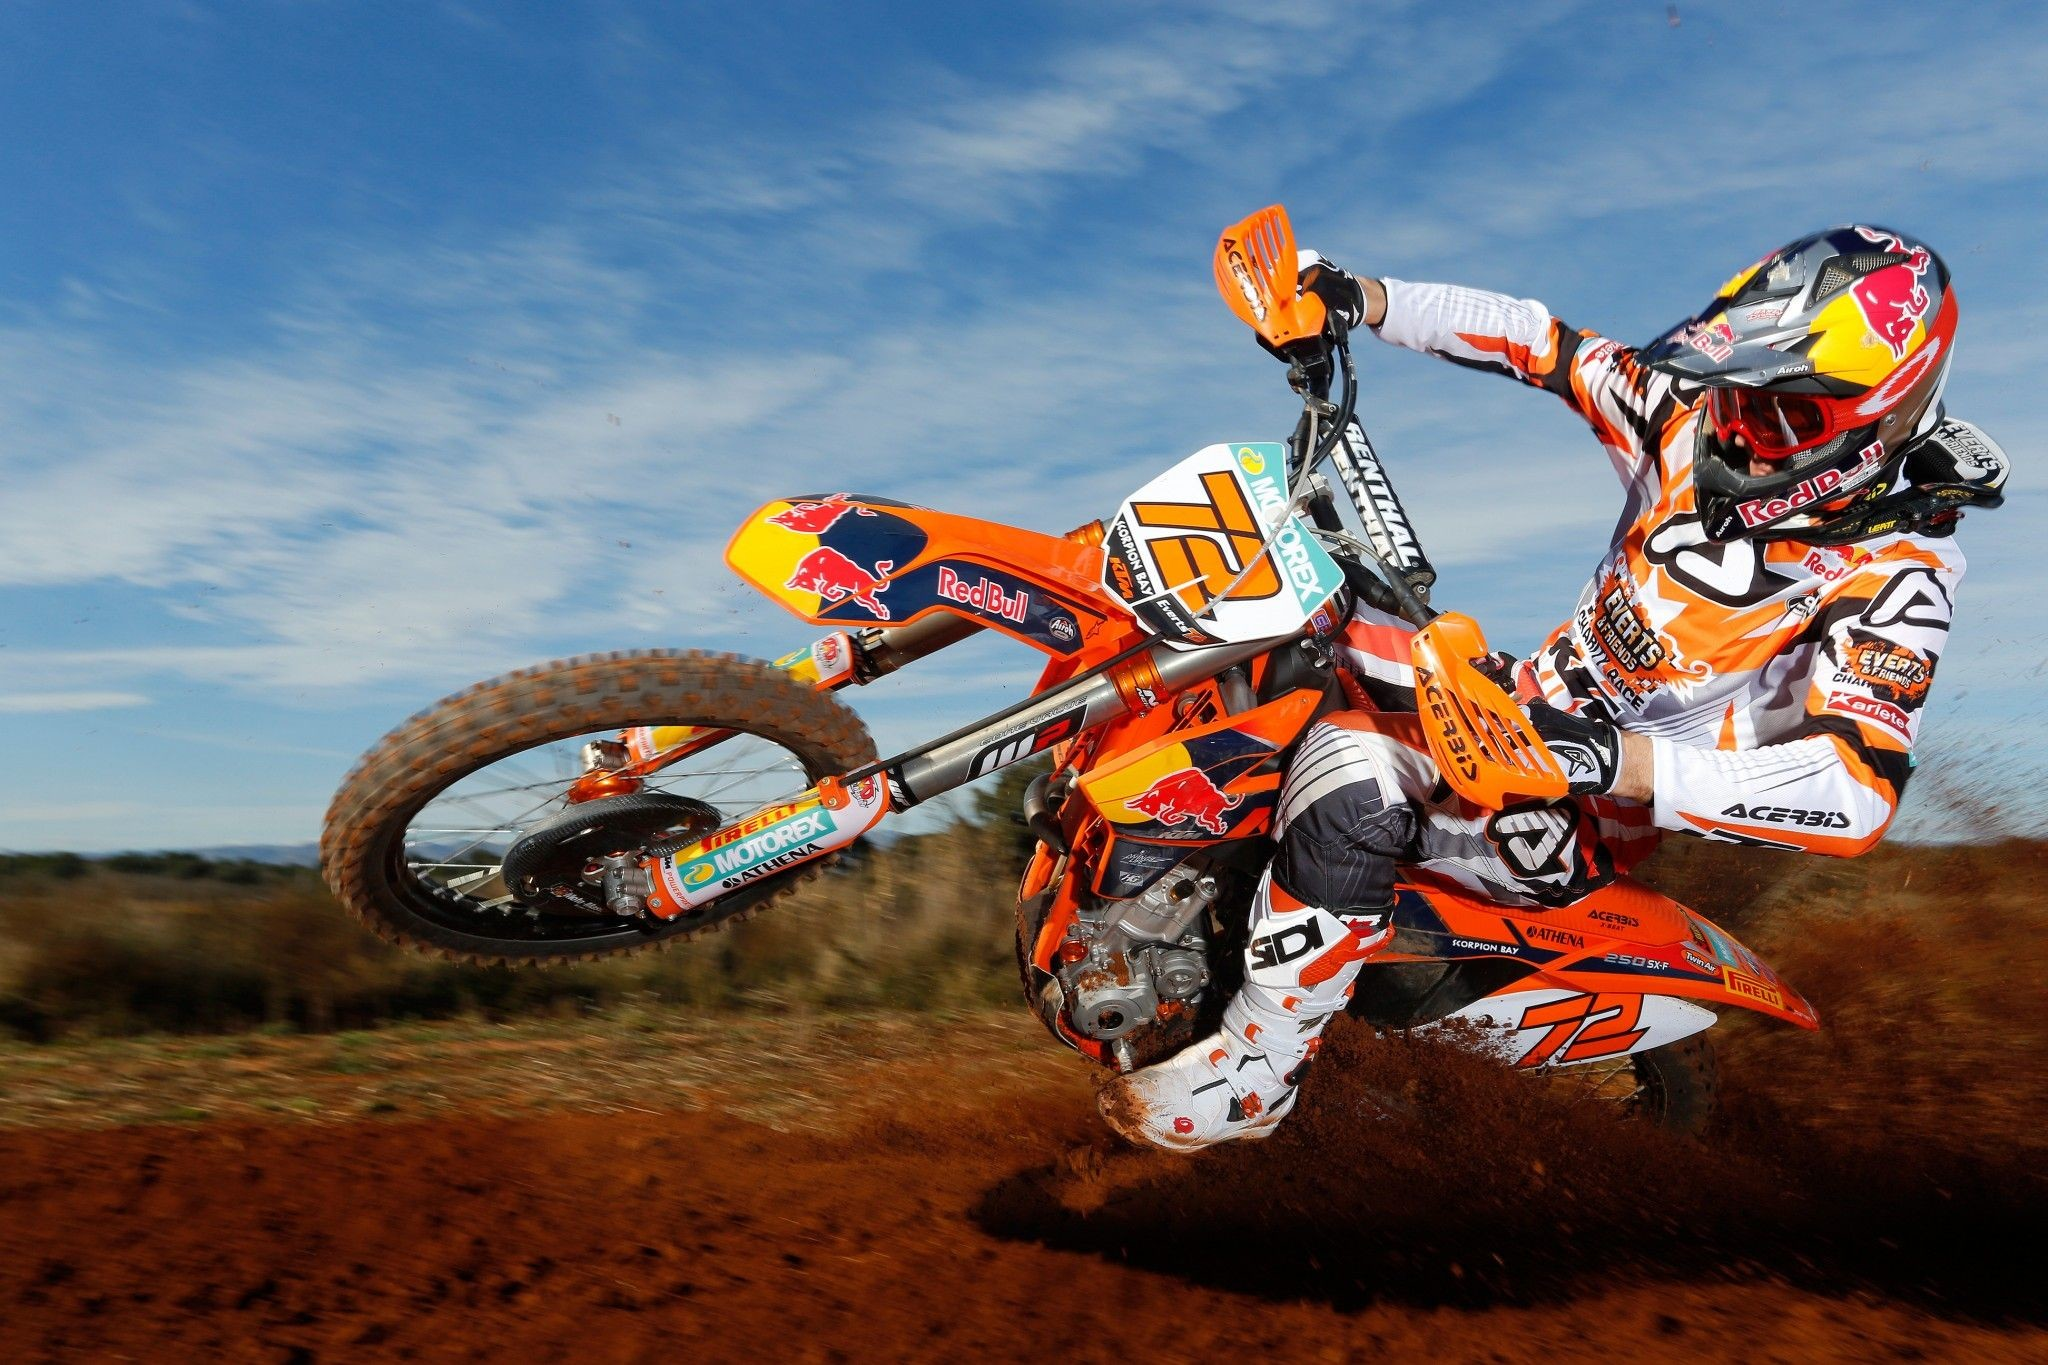 Wallpaper motocross ktm - Moto crosse ktm ...